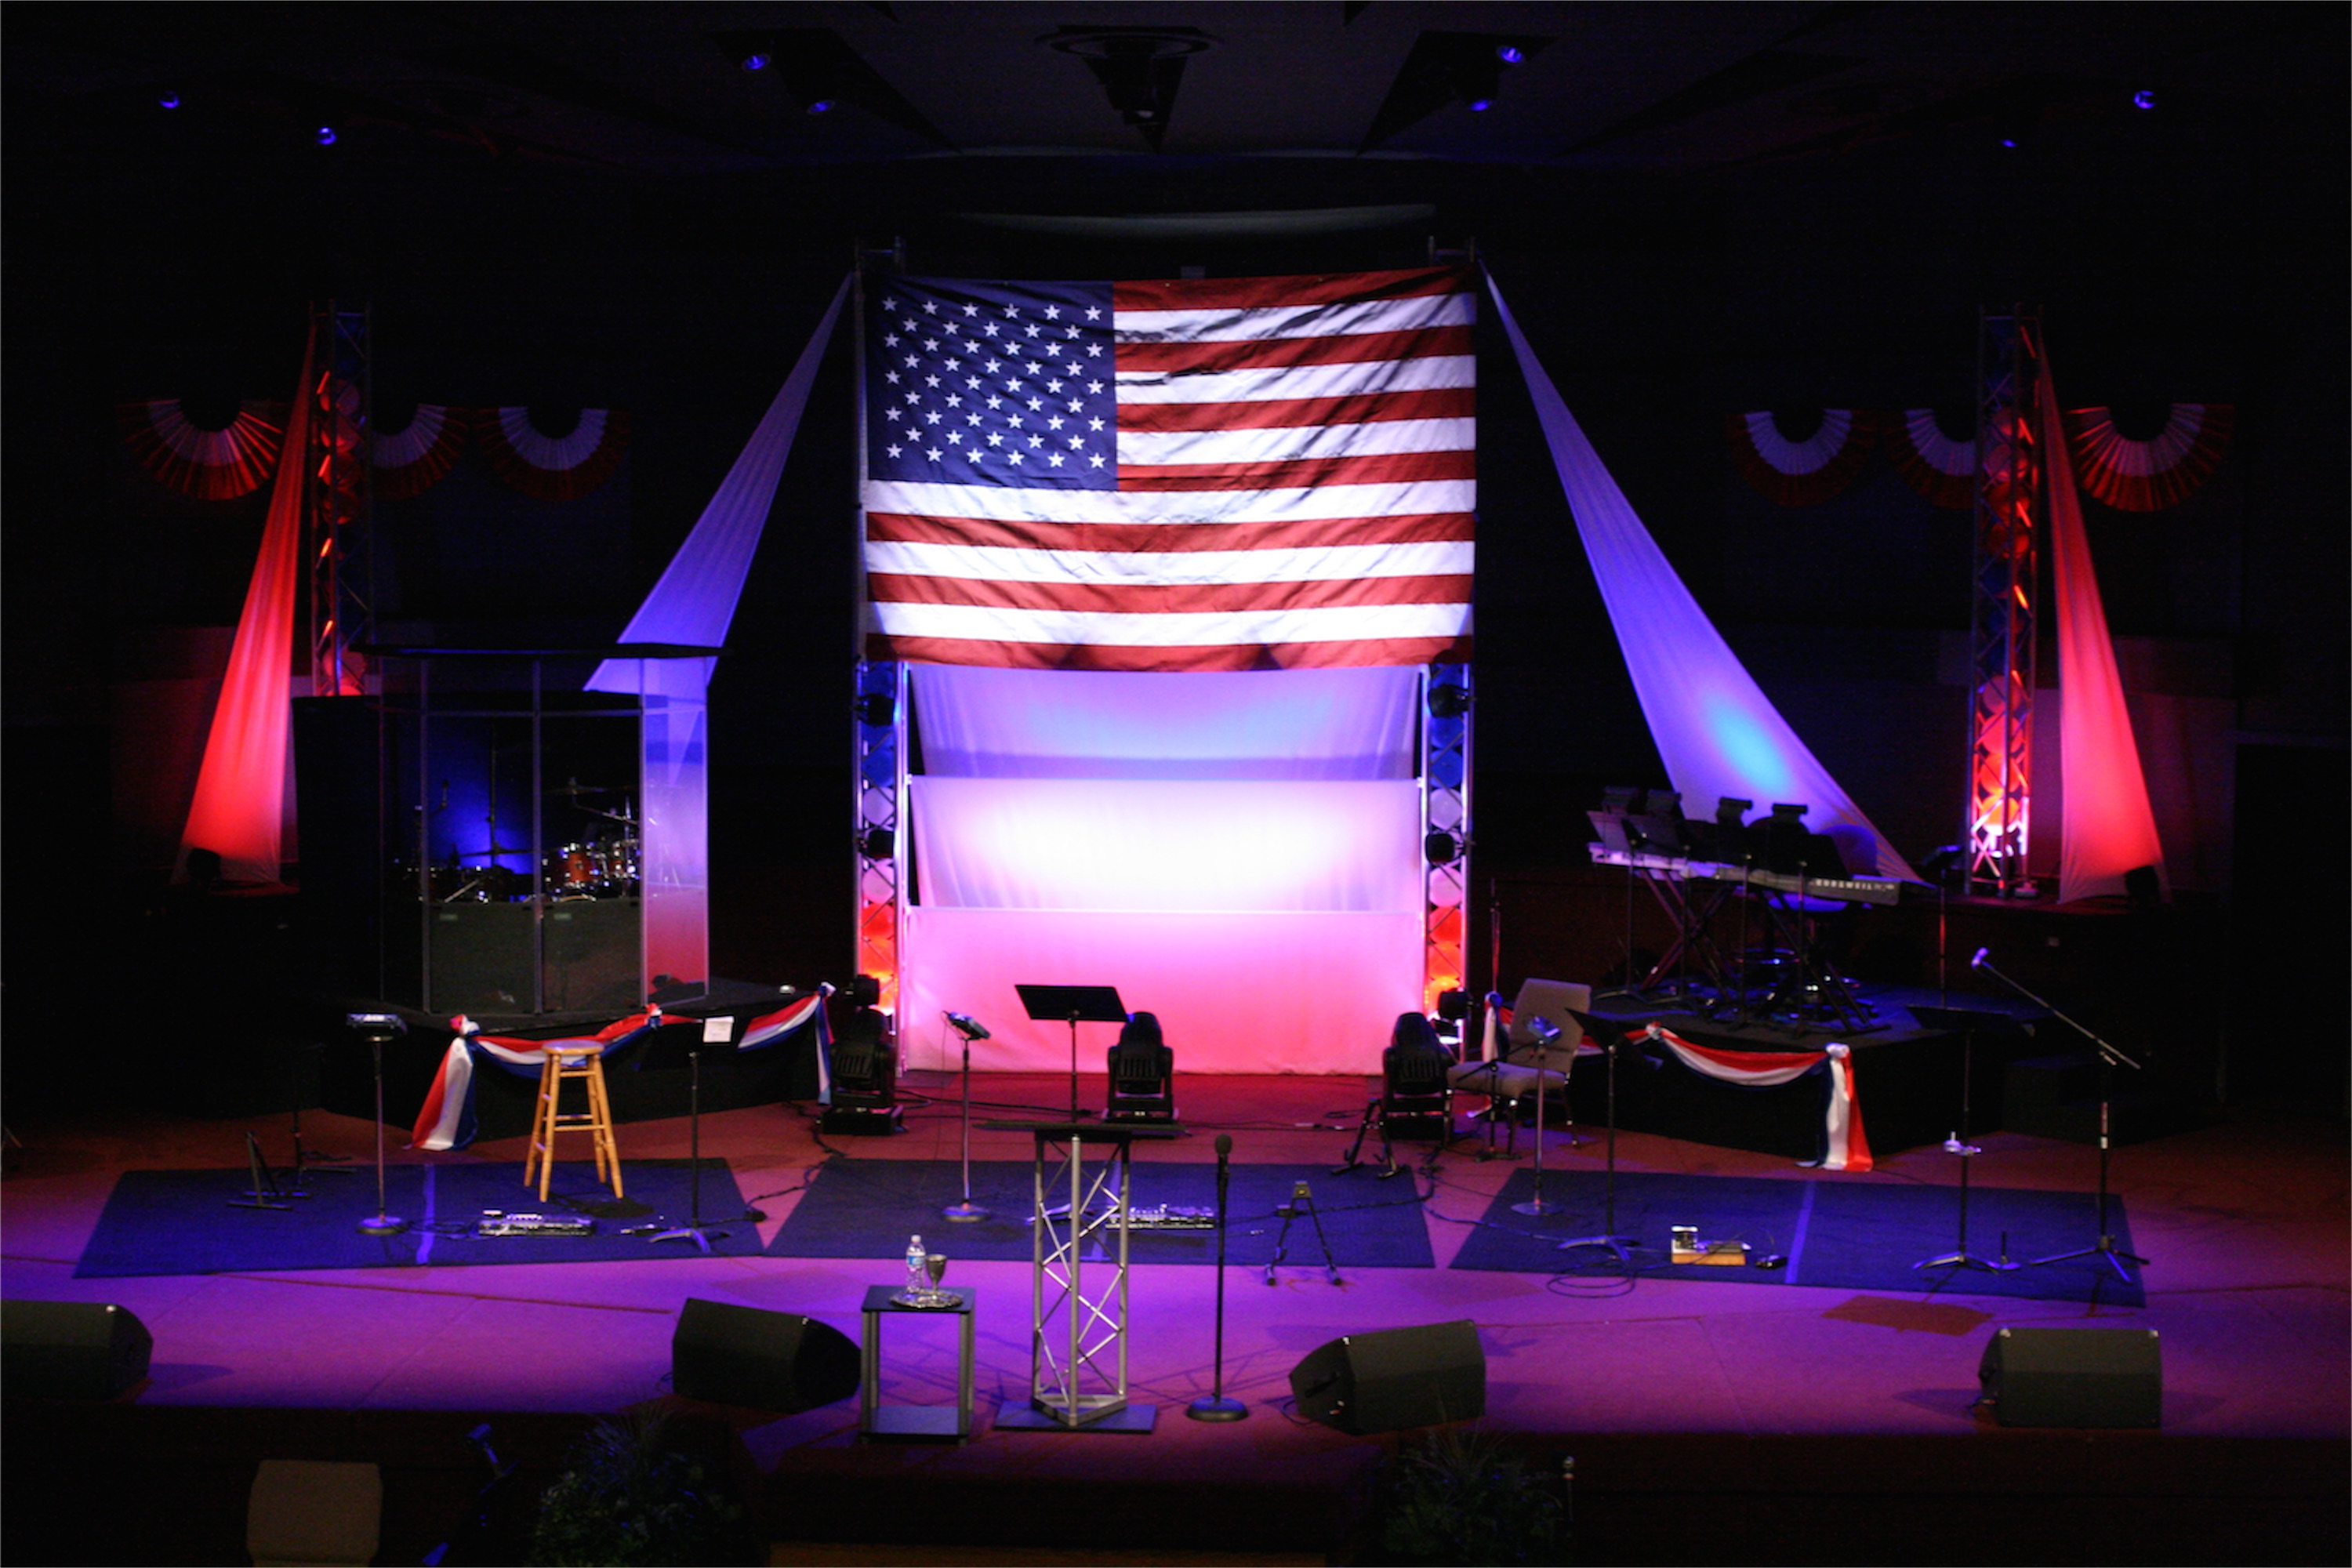 1000 images about patriotic stage decorations on for Auditorium stage decoration